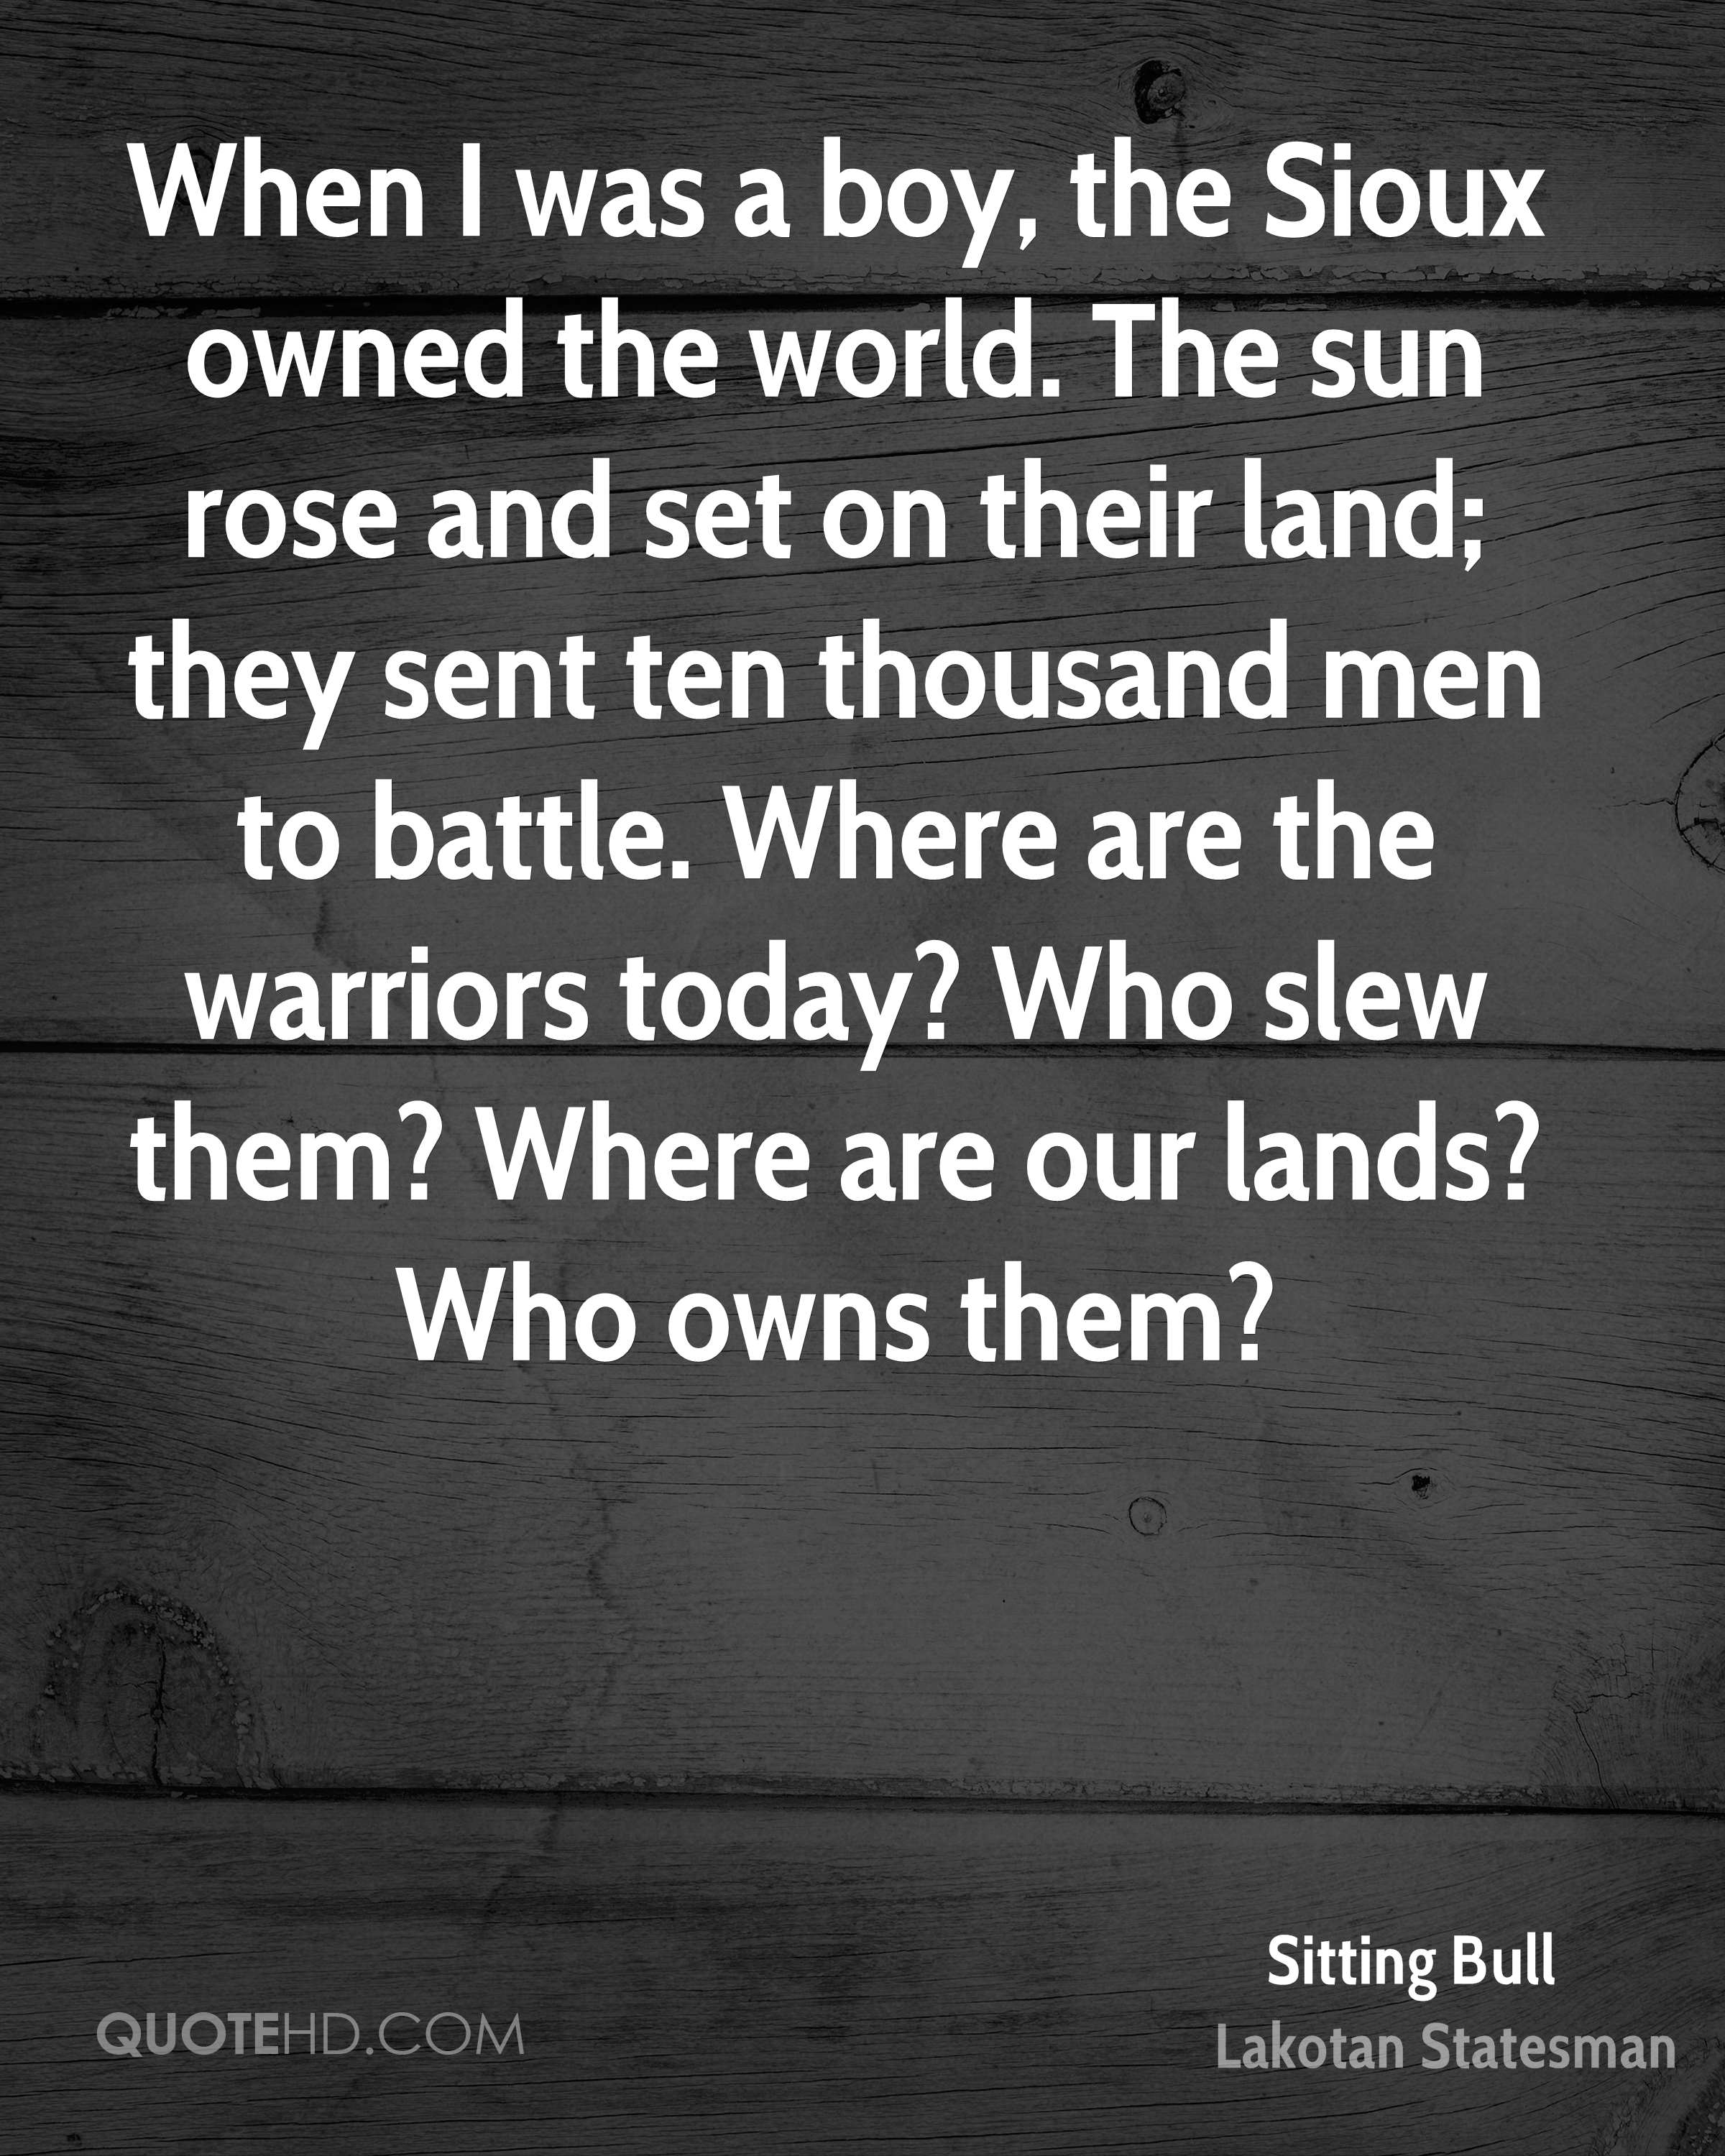 When I was a boy, the Sioux owned the world. The sun rose and set on their land; they sent ten thousand men to battle. Where are the warriors today? Who slew them? Where are our lands? Who owns them?